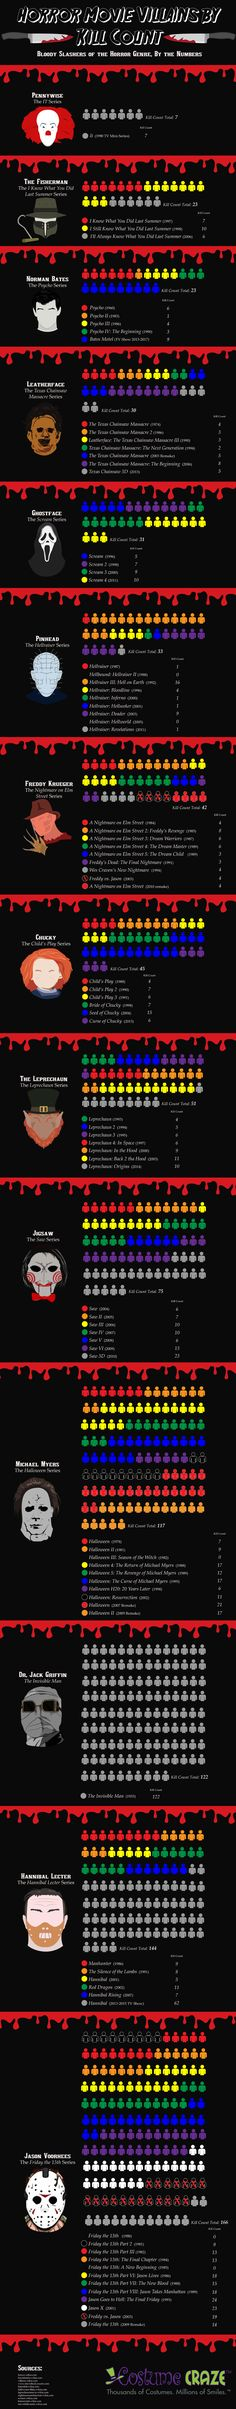 Which horror movie slasher has killed the most people? We've created a list of horror movie deaths that provides a detailed body count for some of the most famous fictional horror characters. Horror Icons, Horror Art, Horror Movies, Horror Villains, Recover Deleted Photos, Costume Craze, Crime Film, Scary Art, Creepy